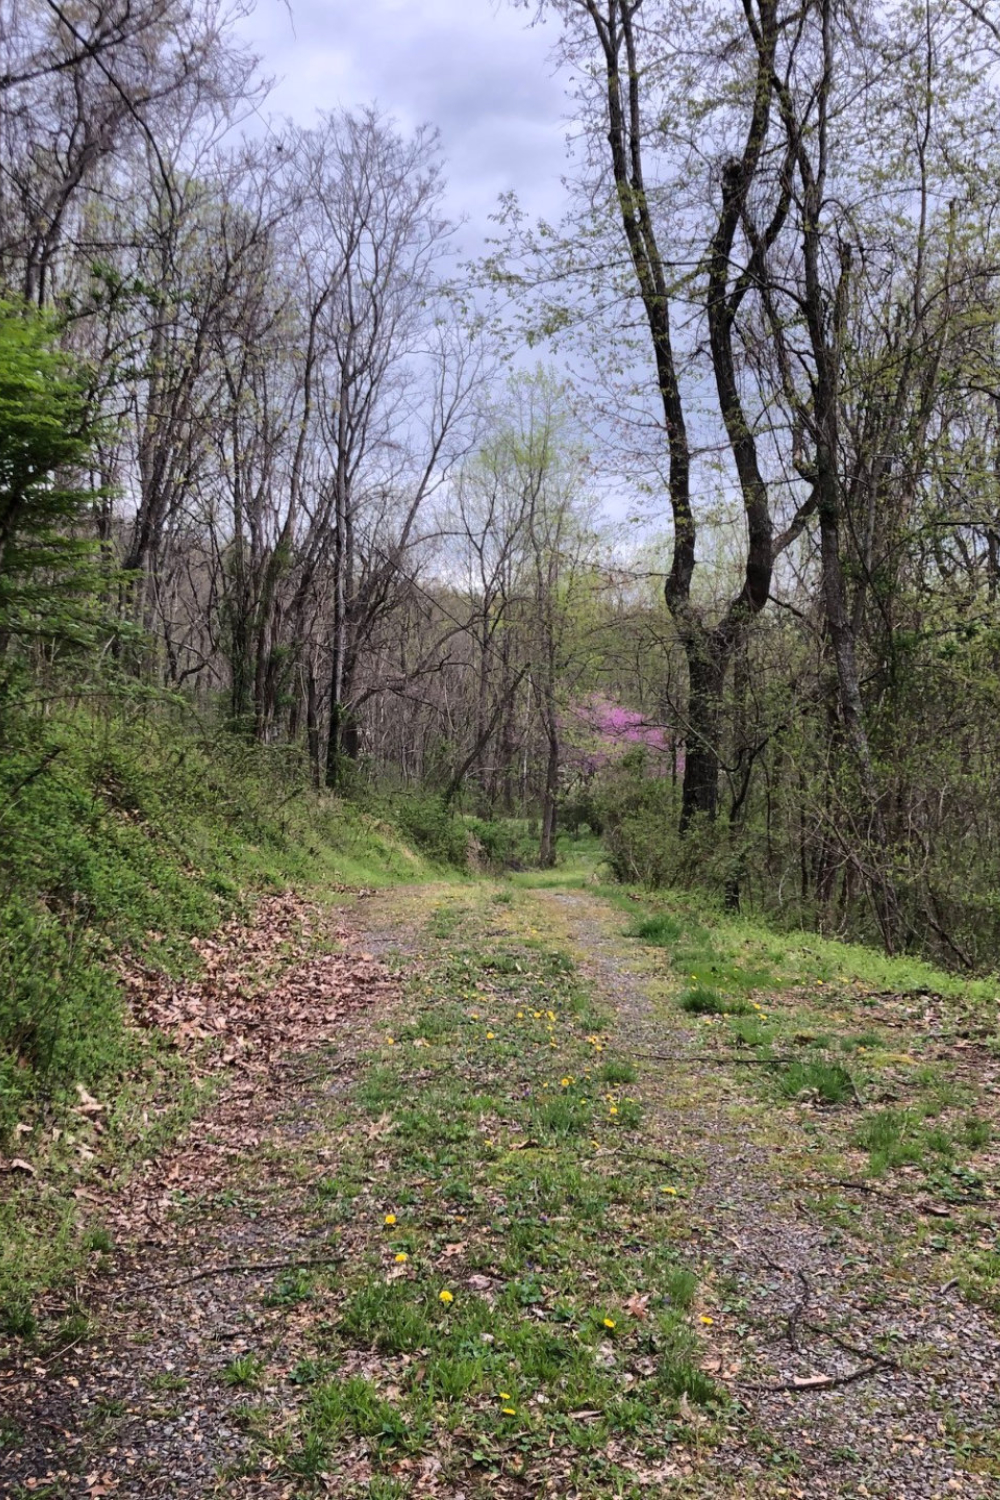 Prepper Diary April 18: Spring Means We Get Busy